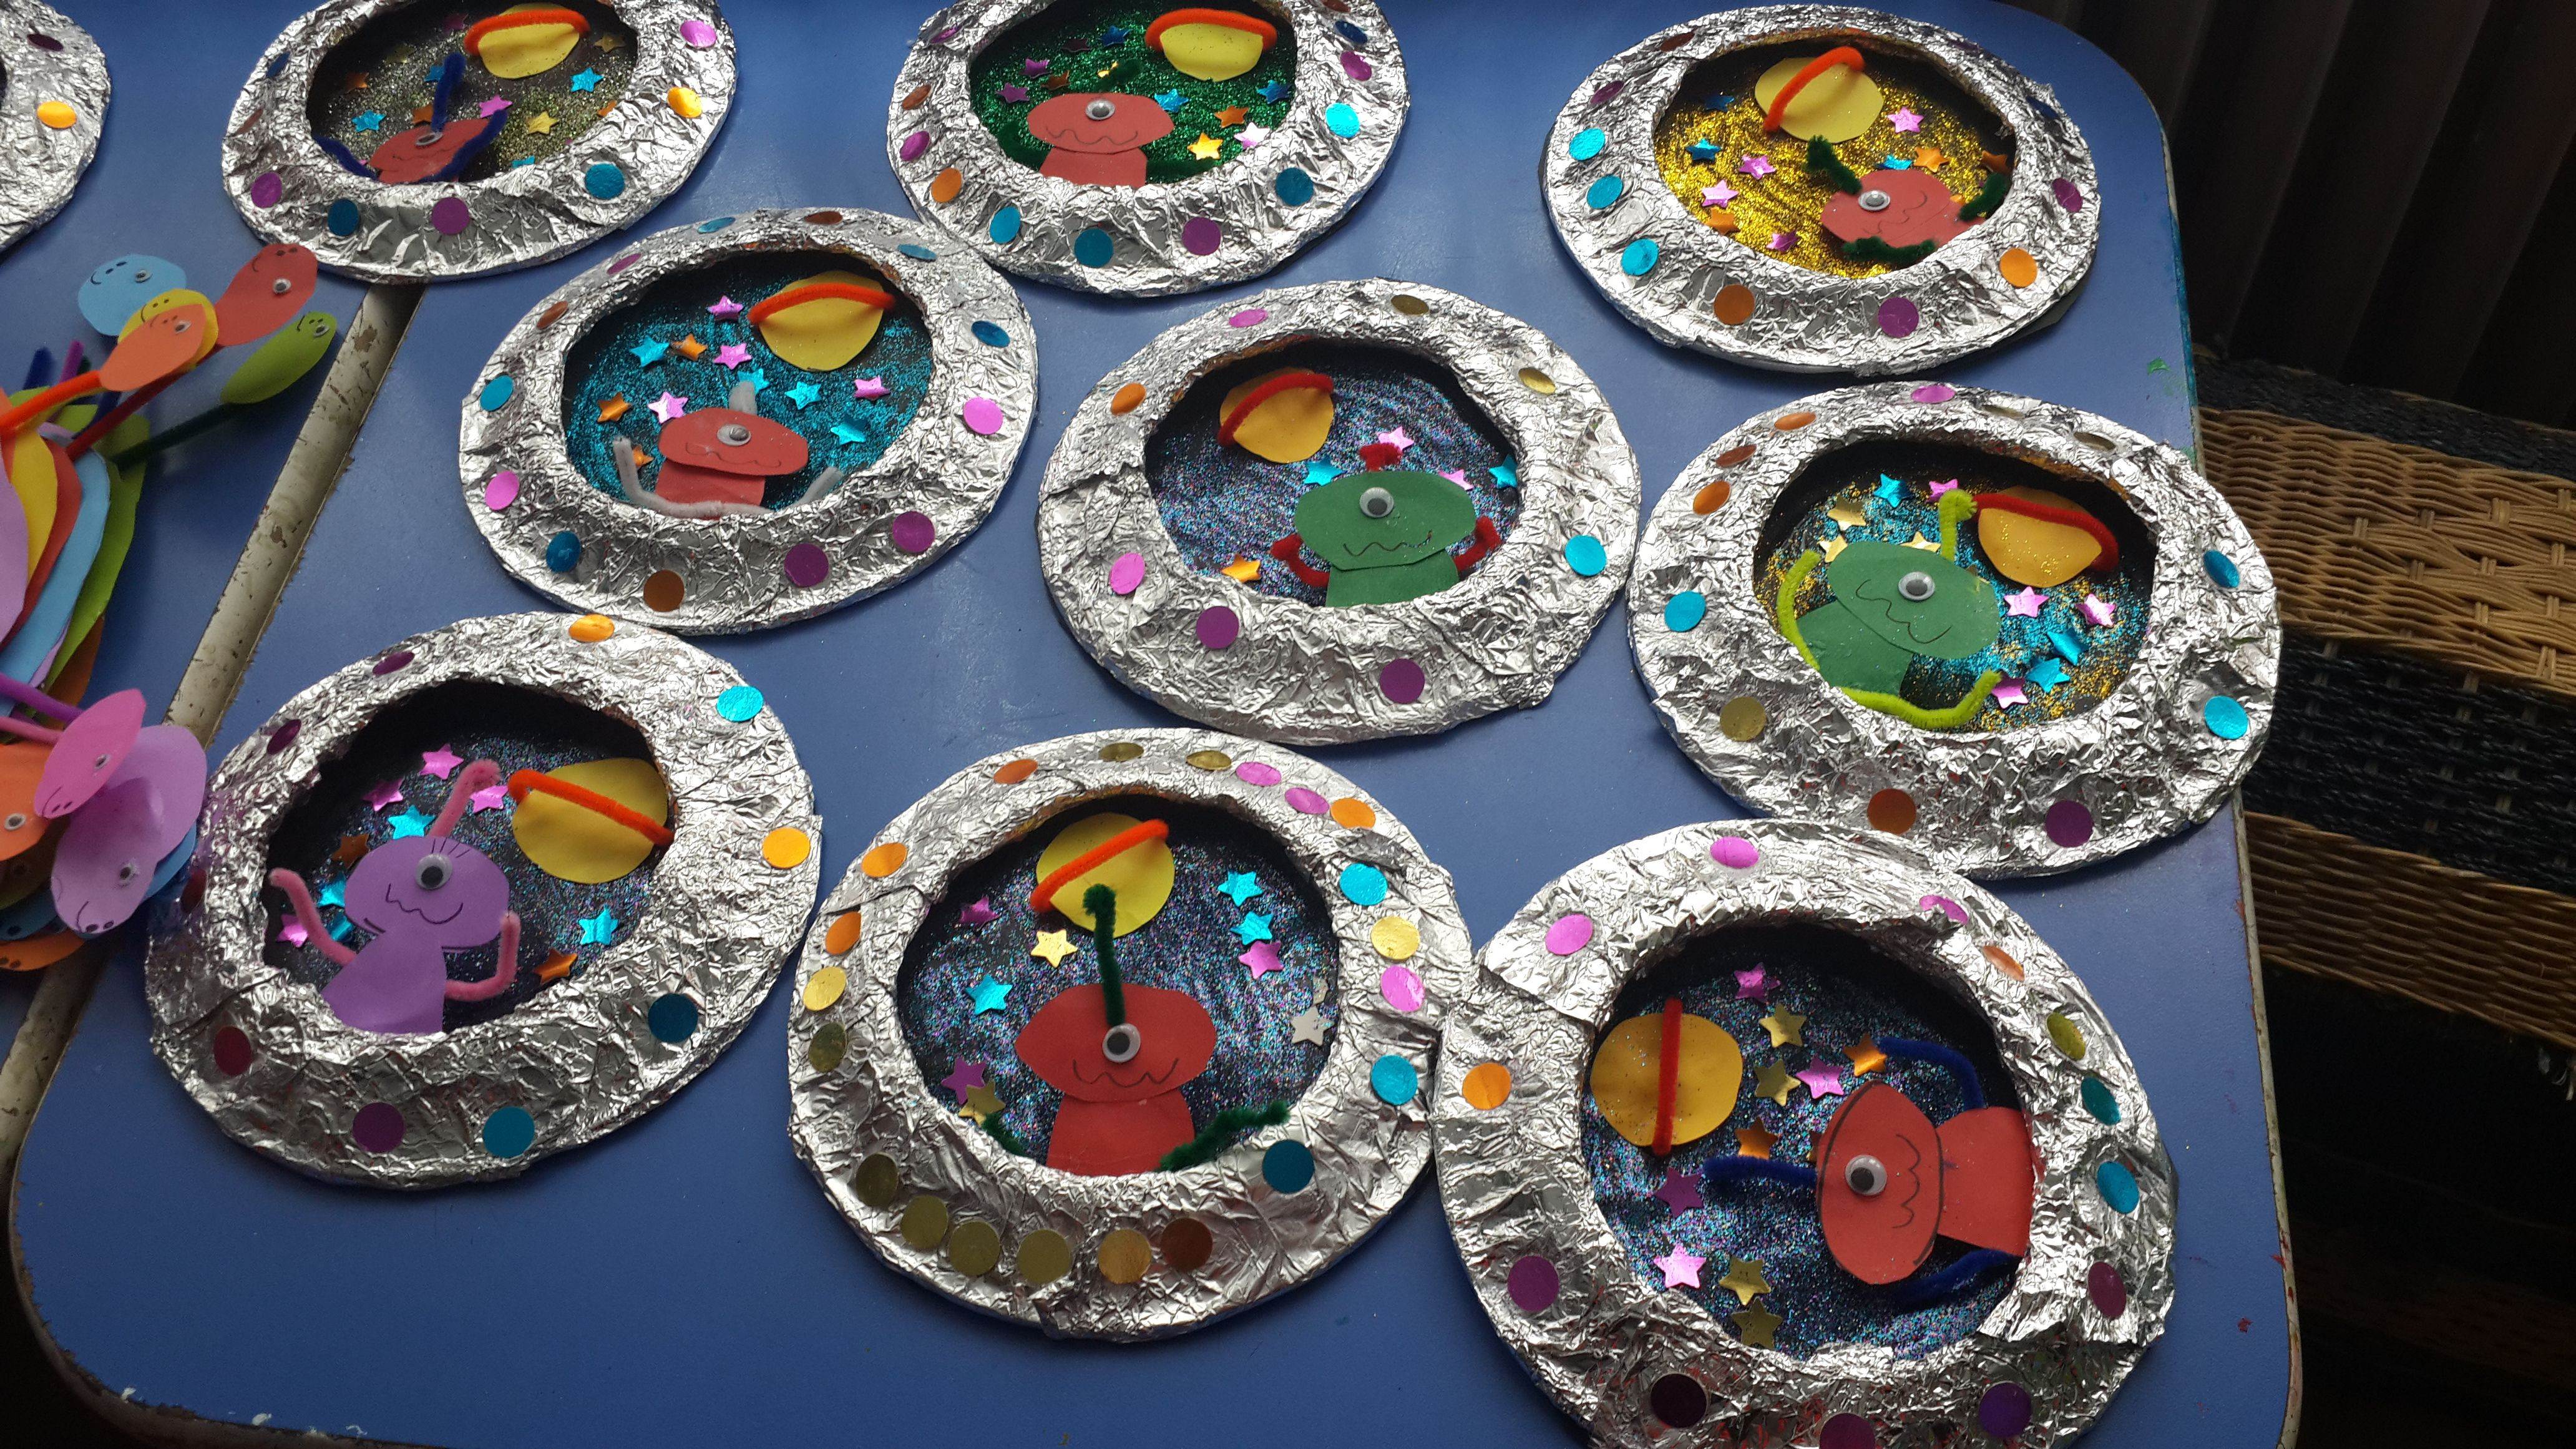 Aliens In Outer Space Idea. Two Paper Plates Covered In